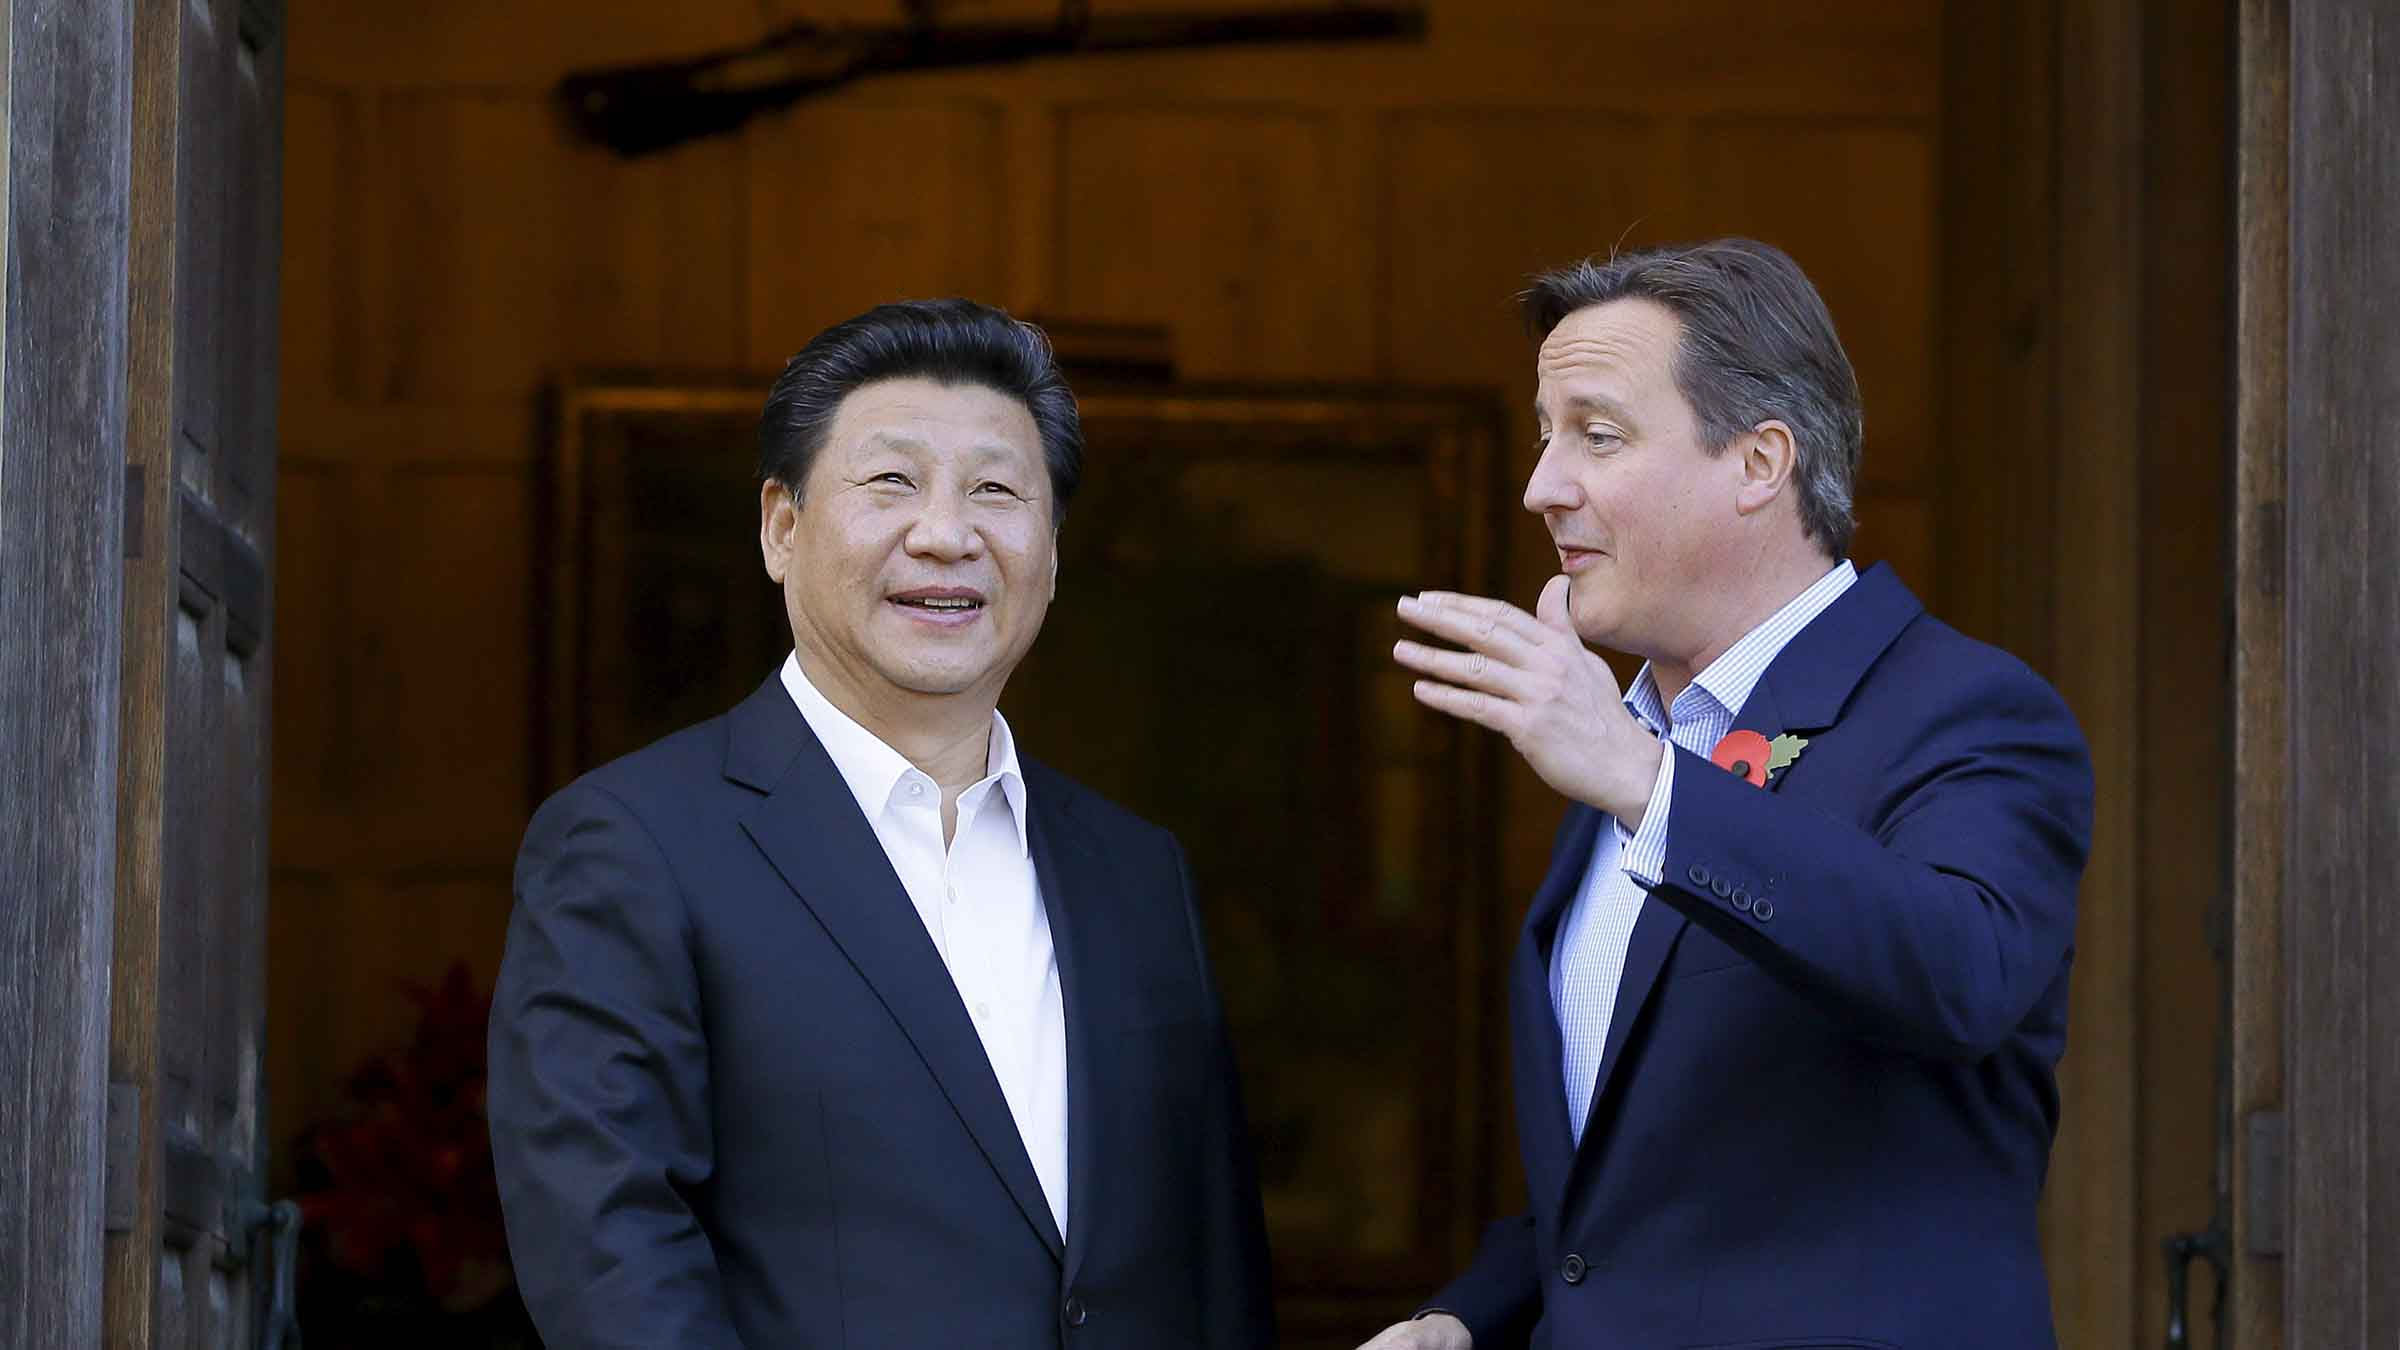 Britain's Prime Minister David Cameron welcomes Chinese President Xi Jinping to his official residence at Chequers